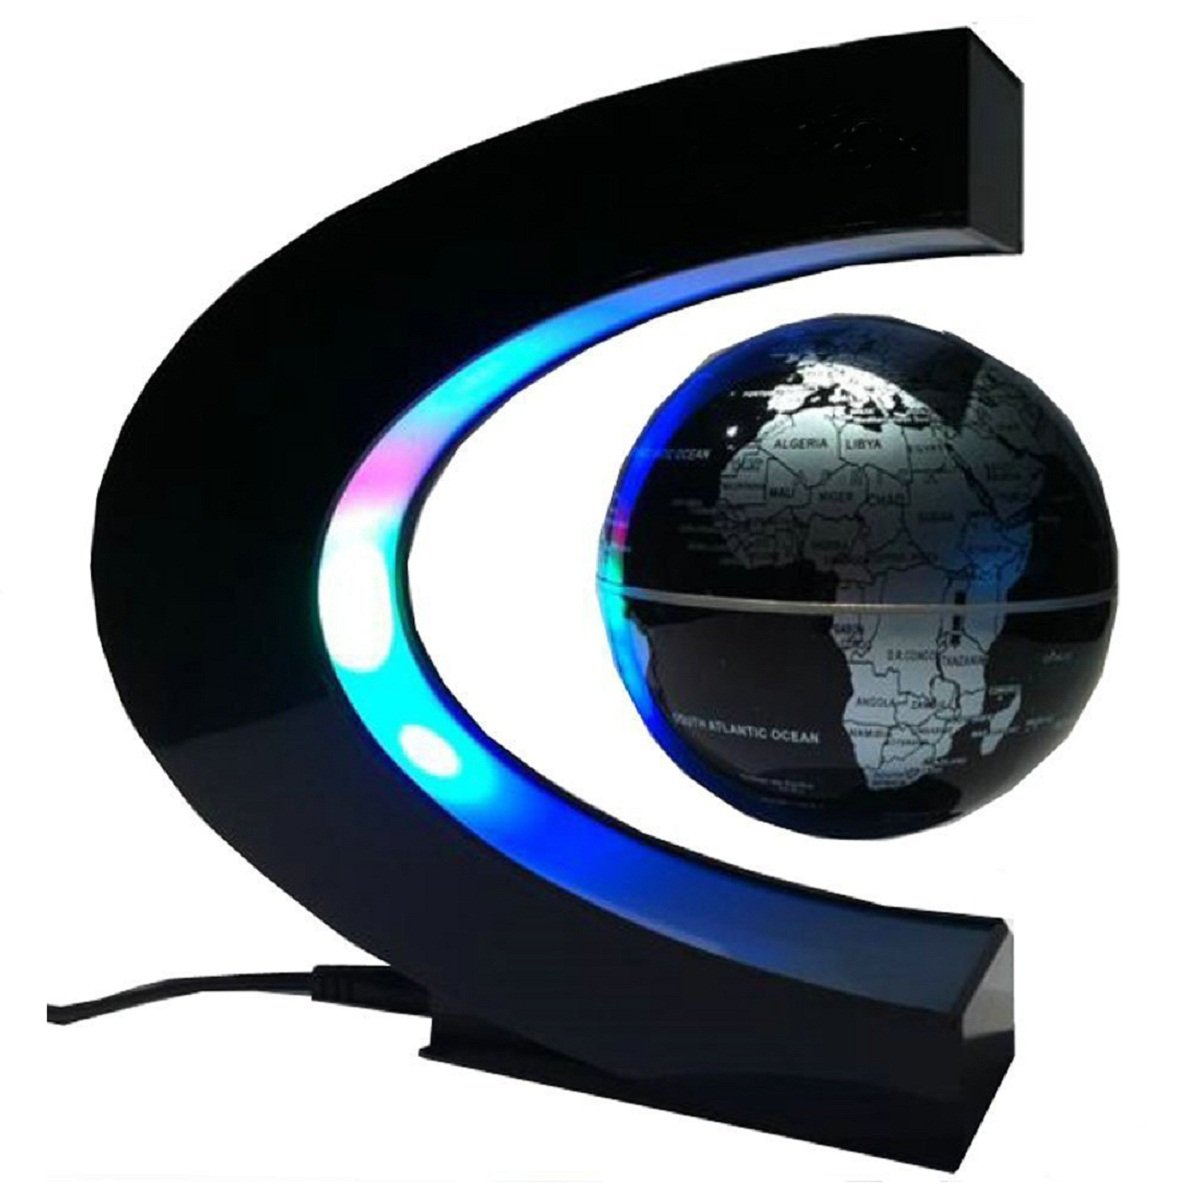 Koiiko funny c shape magnetic levitation floating globe world map koiiko funny c shape magnetic levitation floating globe world map led light office table decorate mysteriously suspended in air great christmas gift for gumiabroncs Images